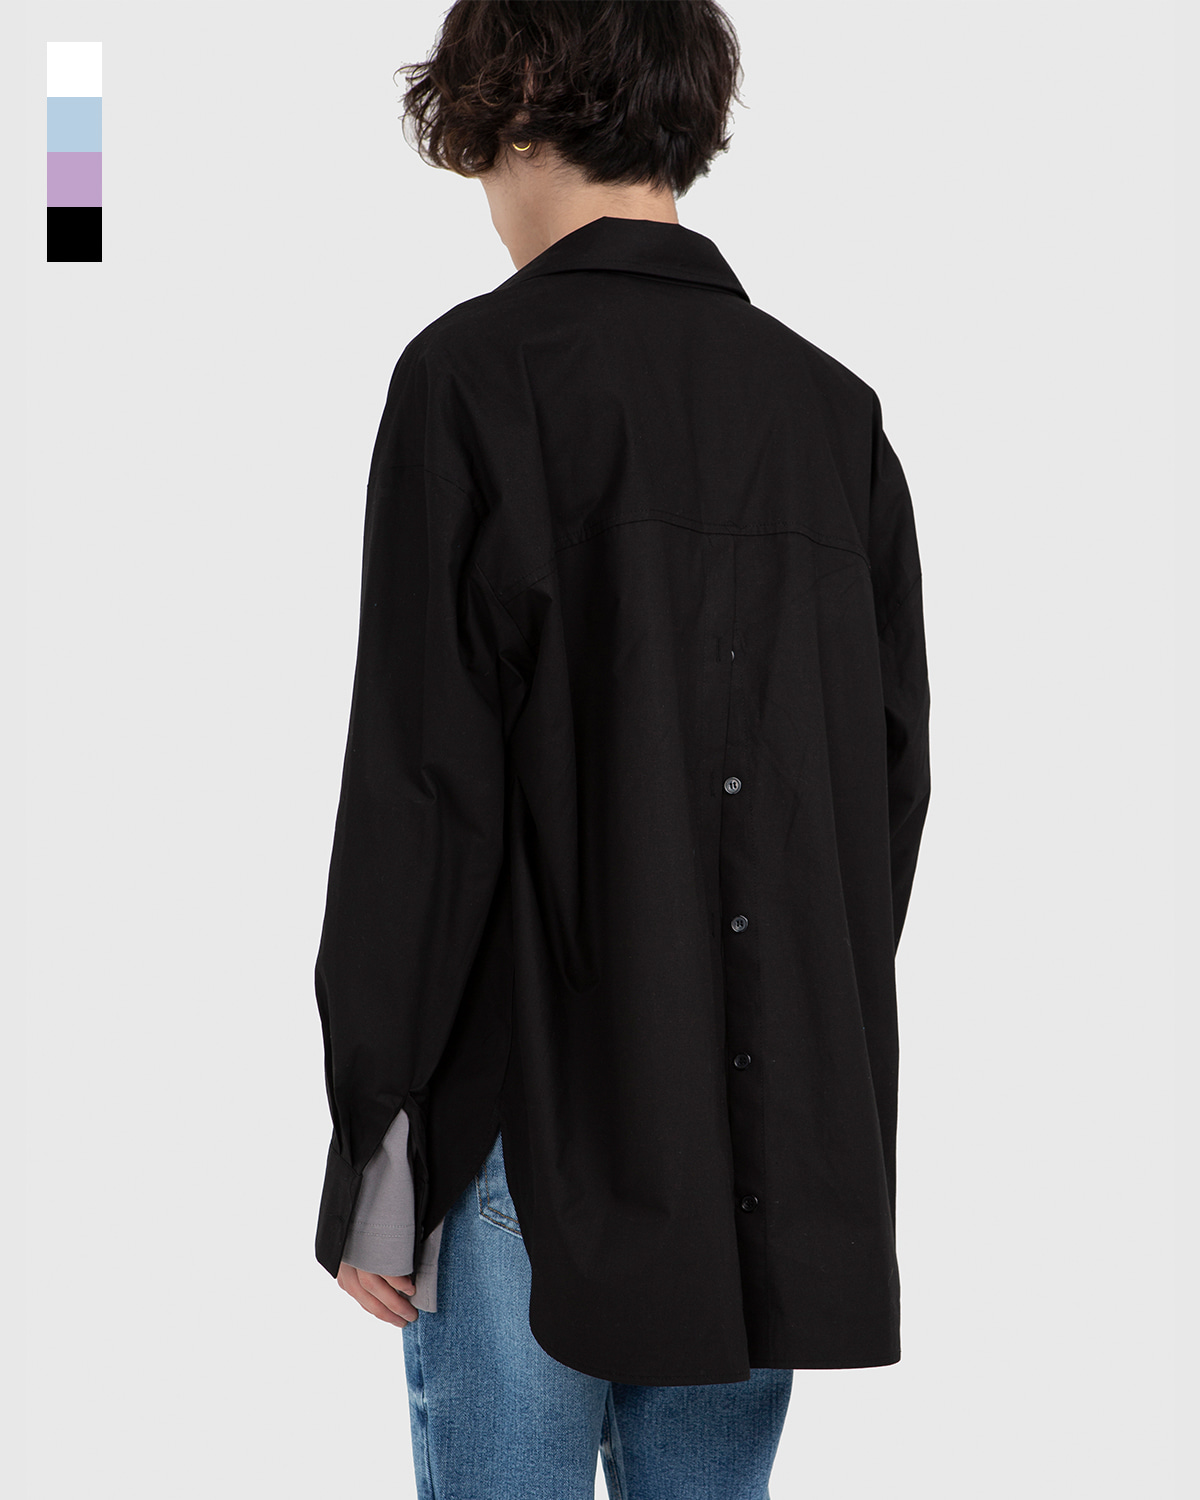 raucohouse-BACK SLIT BUTTON SHIRTS - RAUCO HOUSE♡韓國男裝上衣